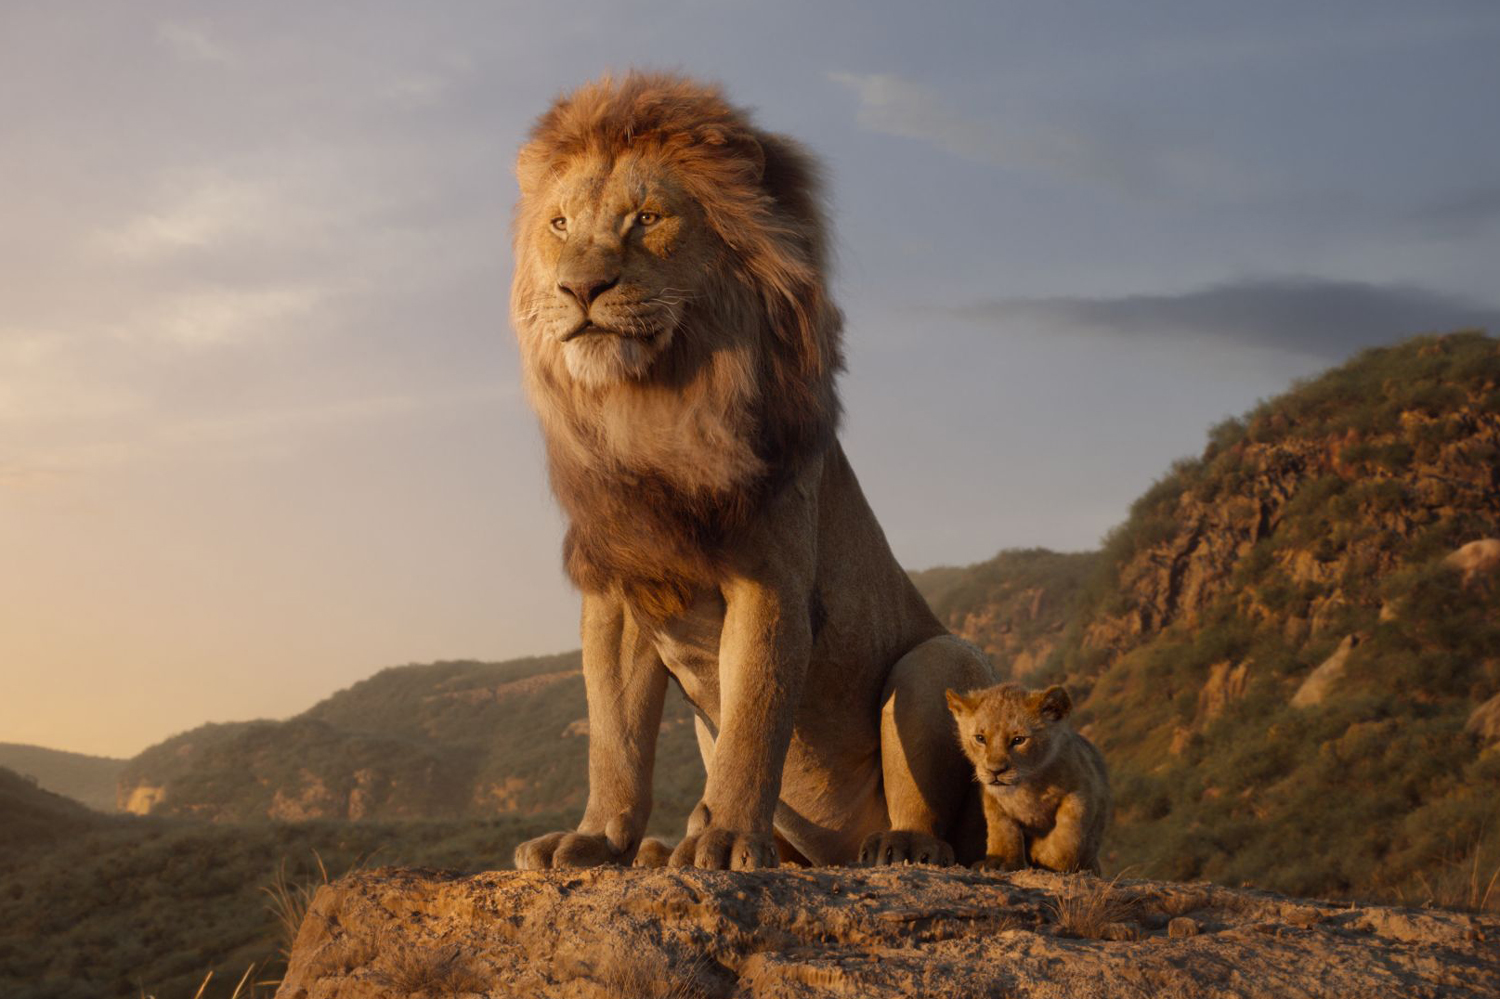 'The Lion King' Remake: The Circle of Life Returns With a Risk-Free Repeat